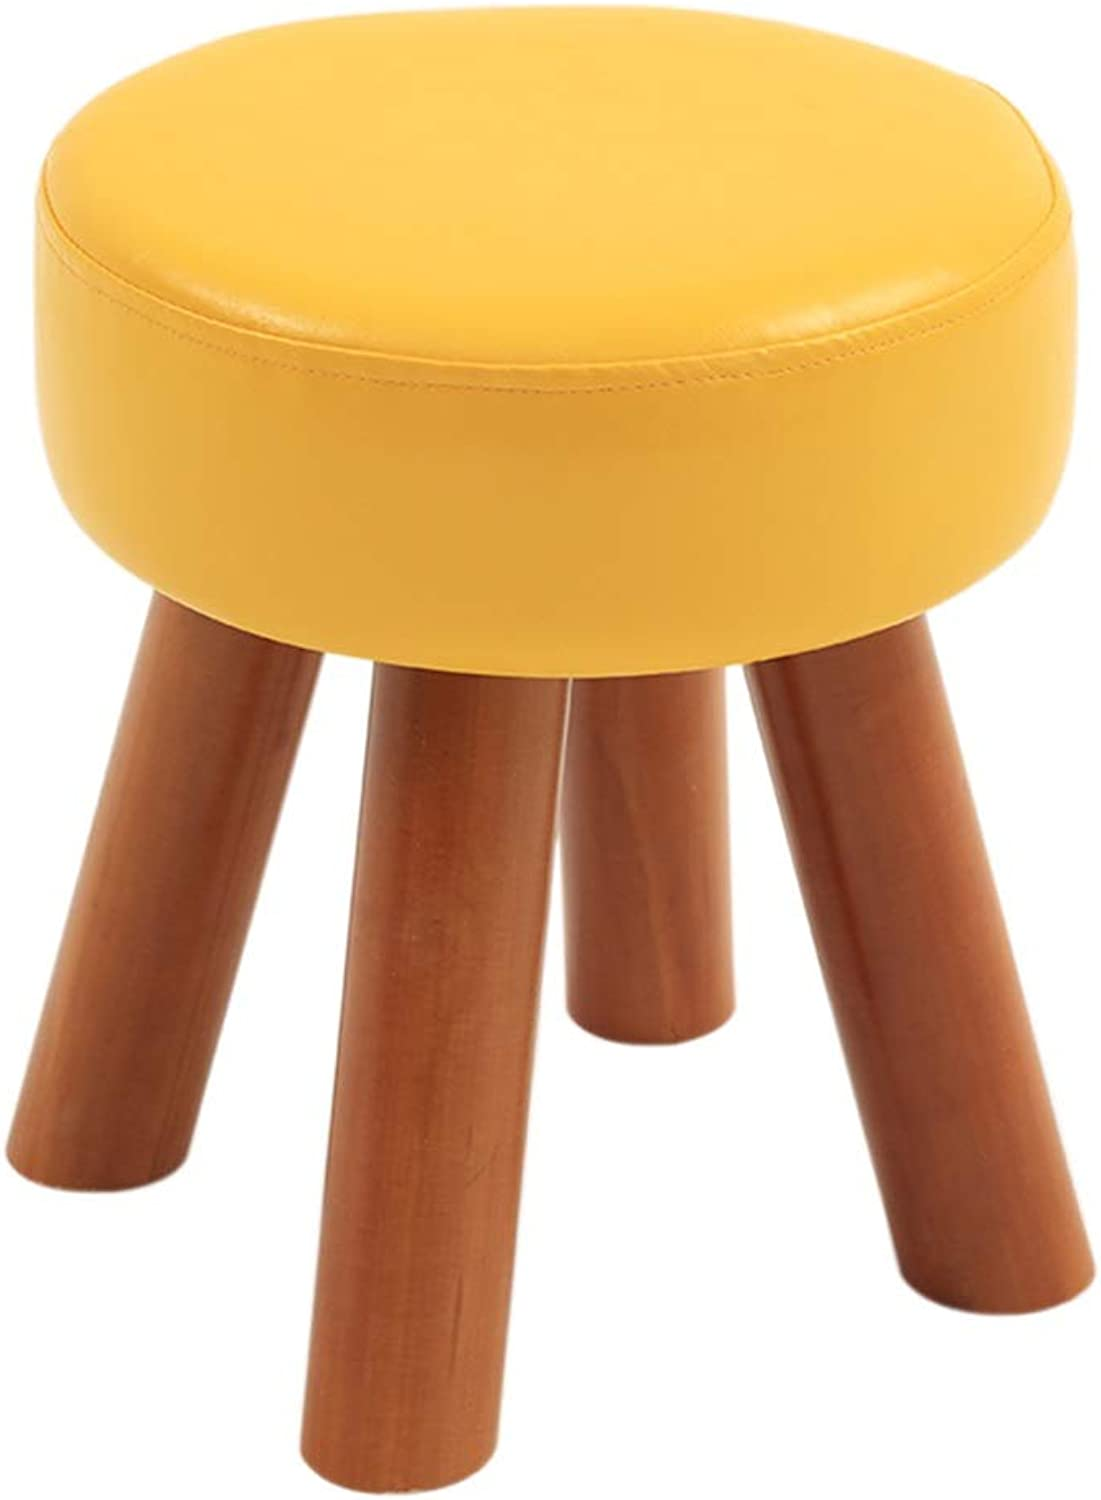 PU Leather Round Stool Household Sofa Stool Solid Wood Footstool Waterproof Change shoes Bench Width 28 × Height 32 cm GW (color   Yellow)